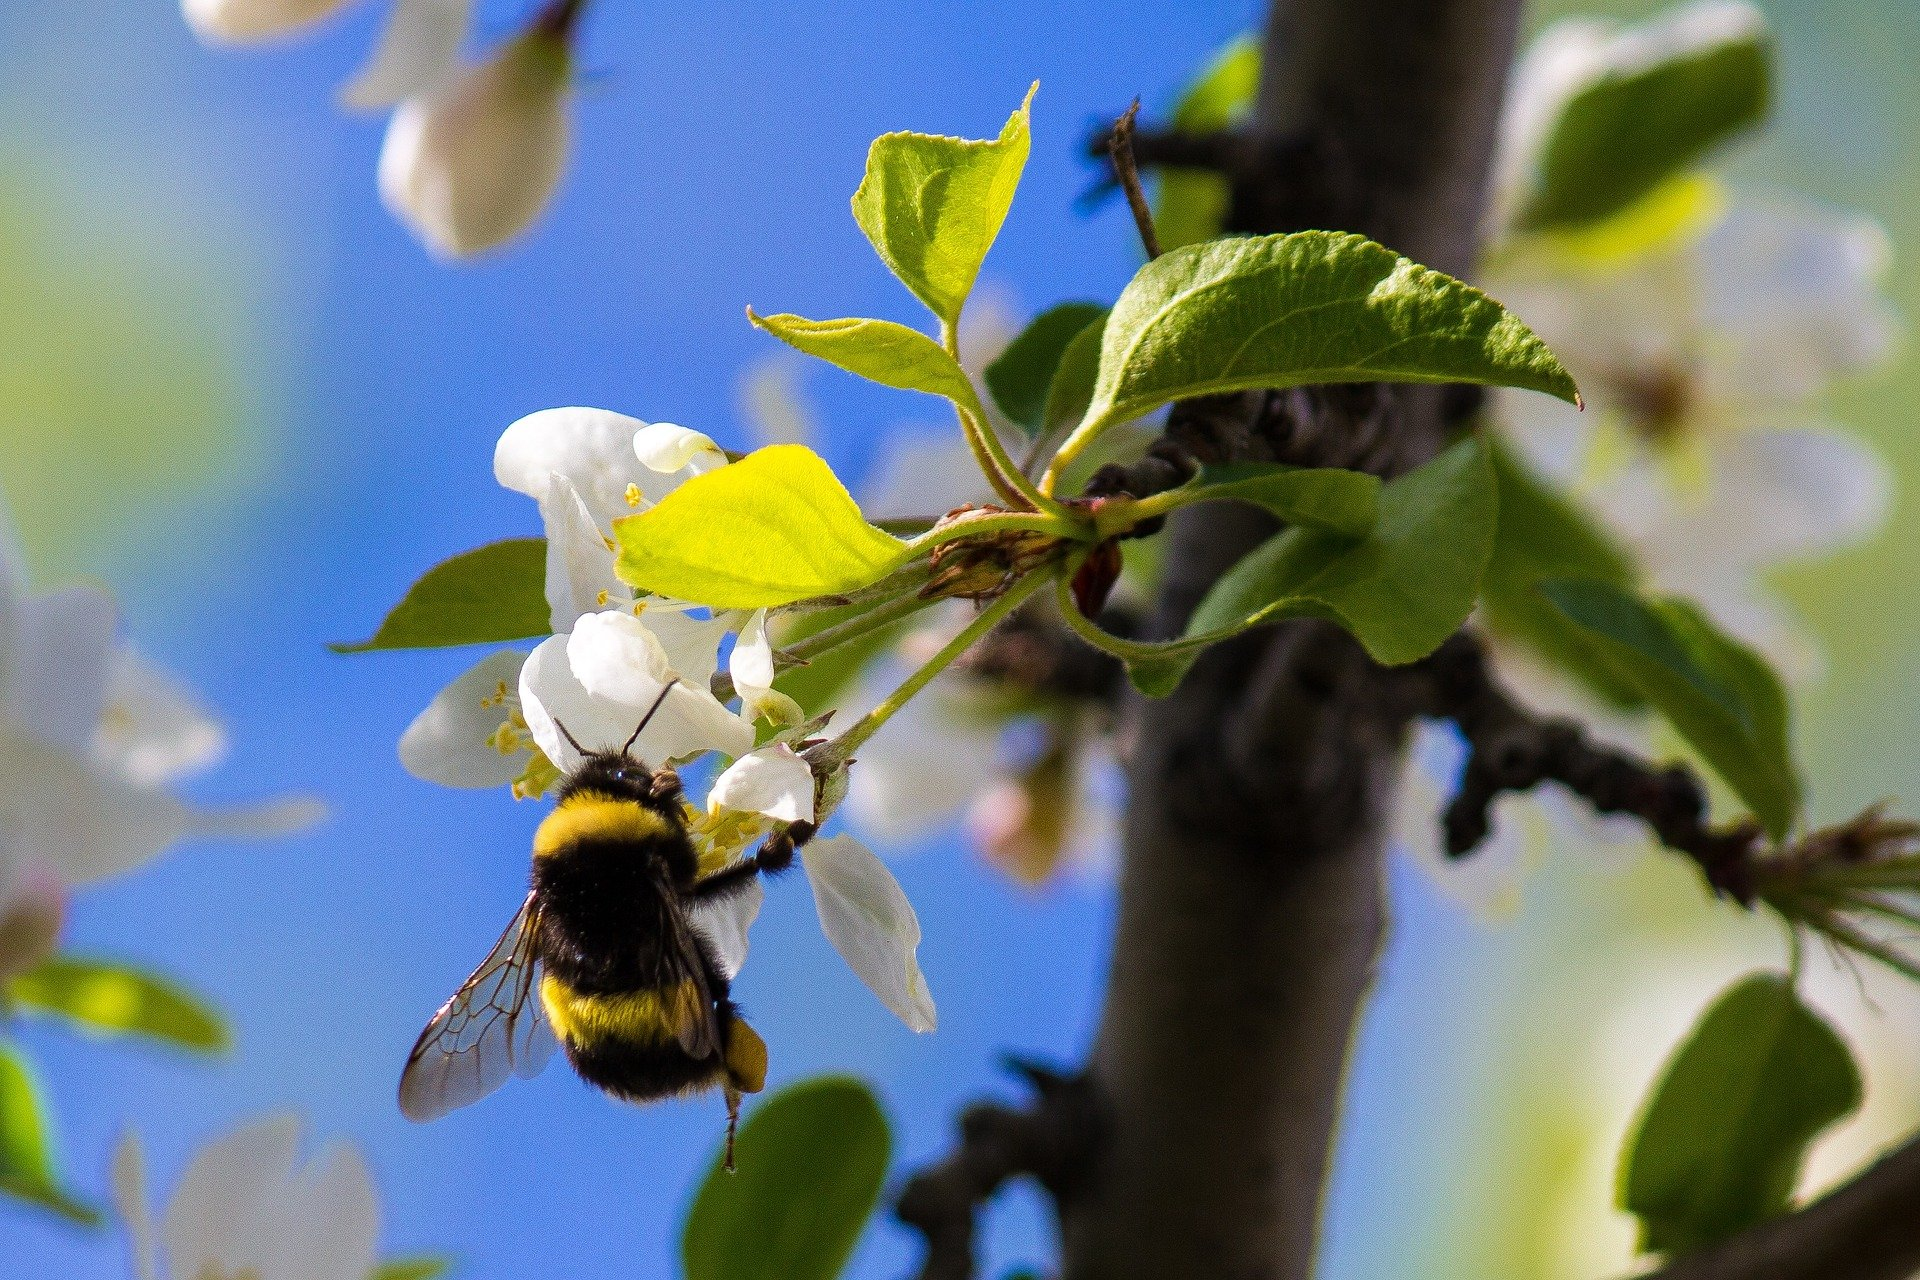 15 Best Plants To Attract Pollinators (And Other Beneficial Insects) To Your Commercial Property